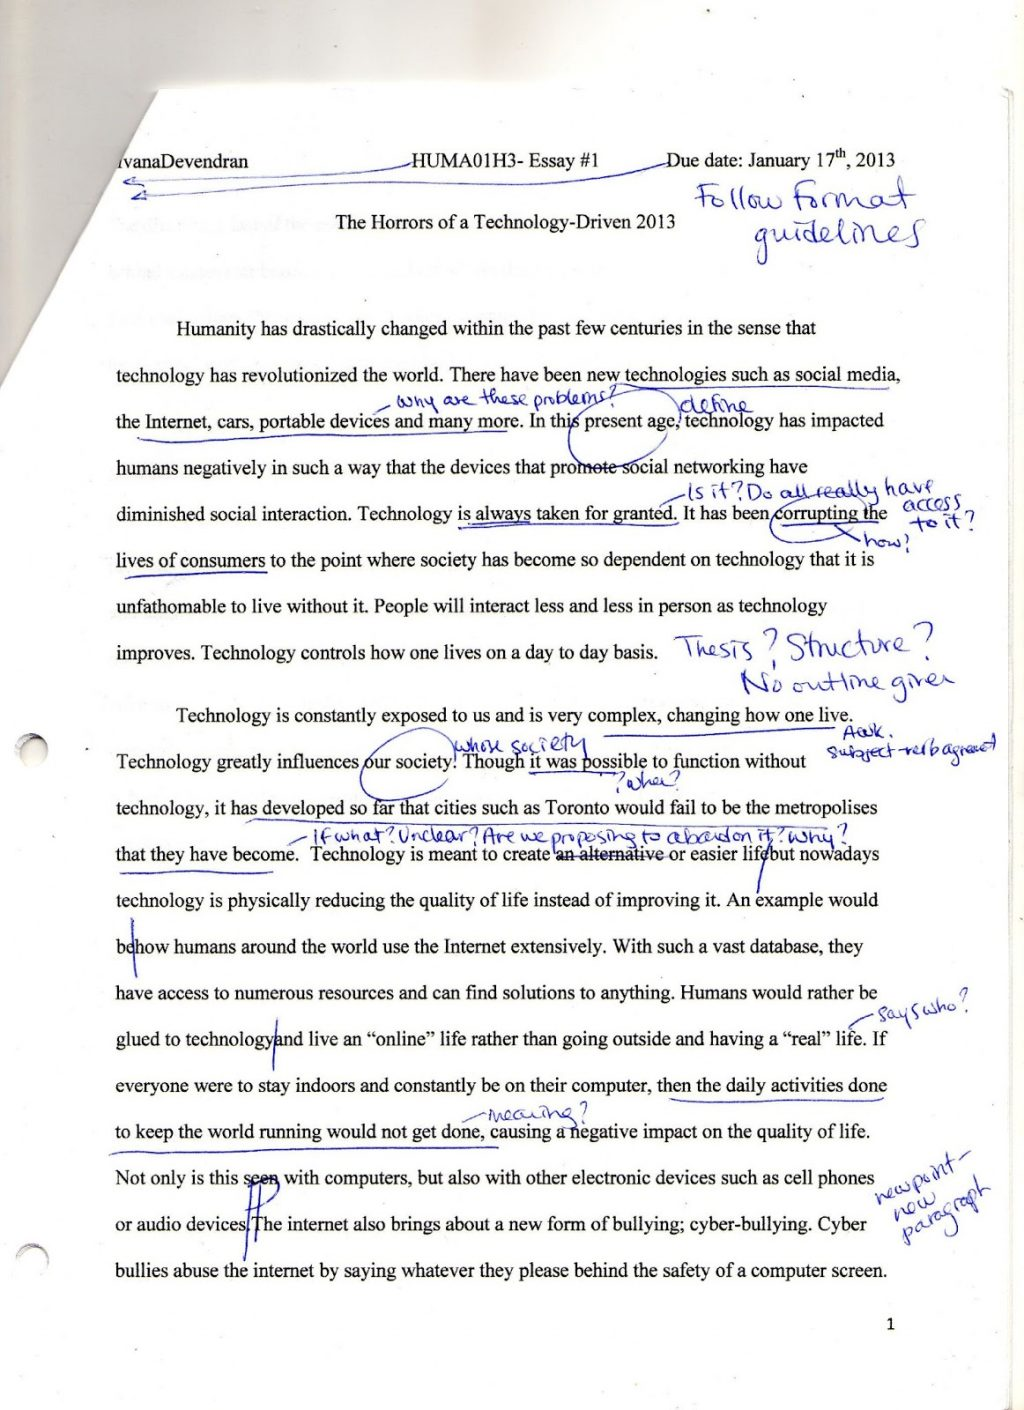 003 Research Paper Essays Music Img008 What Should You Avoid In Writing Humanities Appreciation Questions Classical History Persuasive20 1024x1410 Argumentative Frightening Topics Full